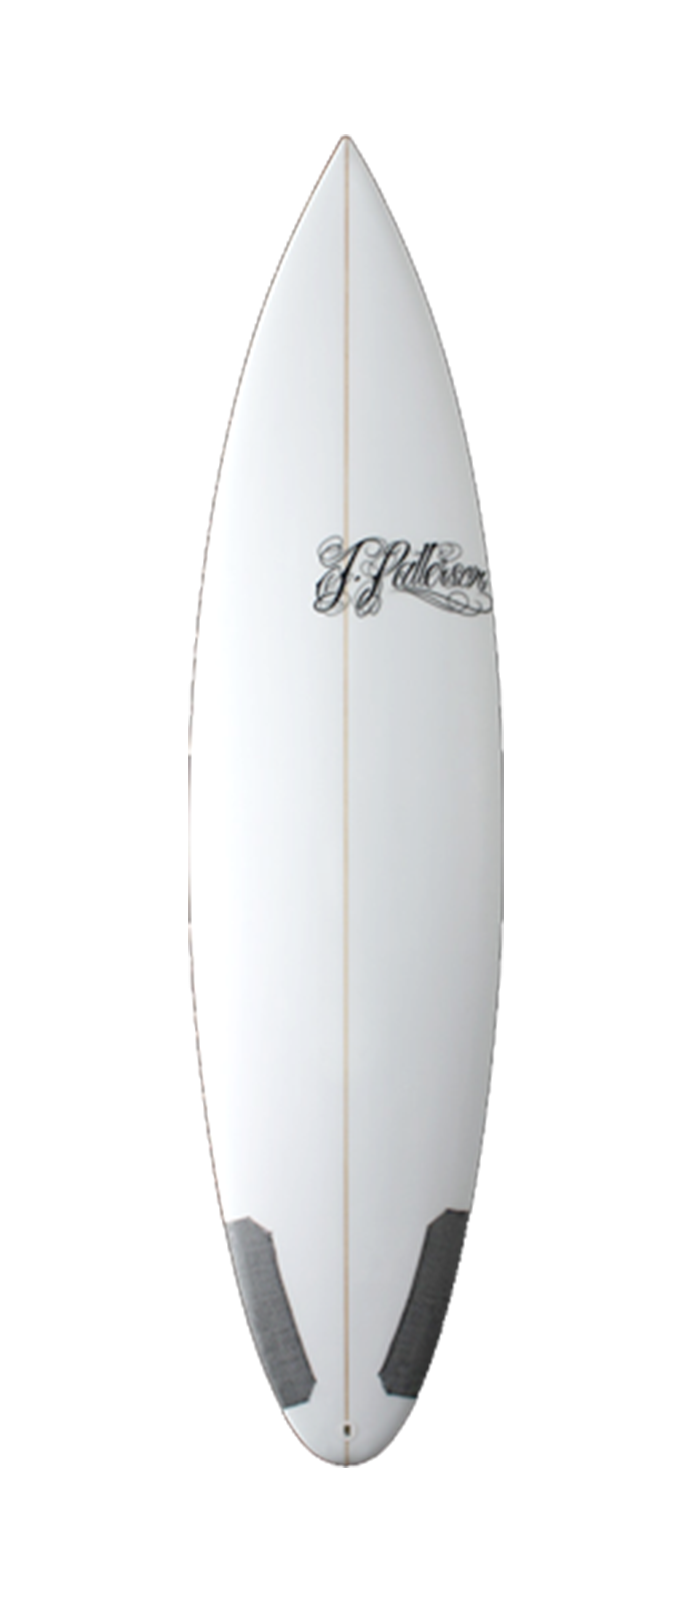 Step Up surfboard model deck